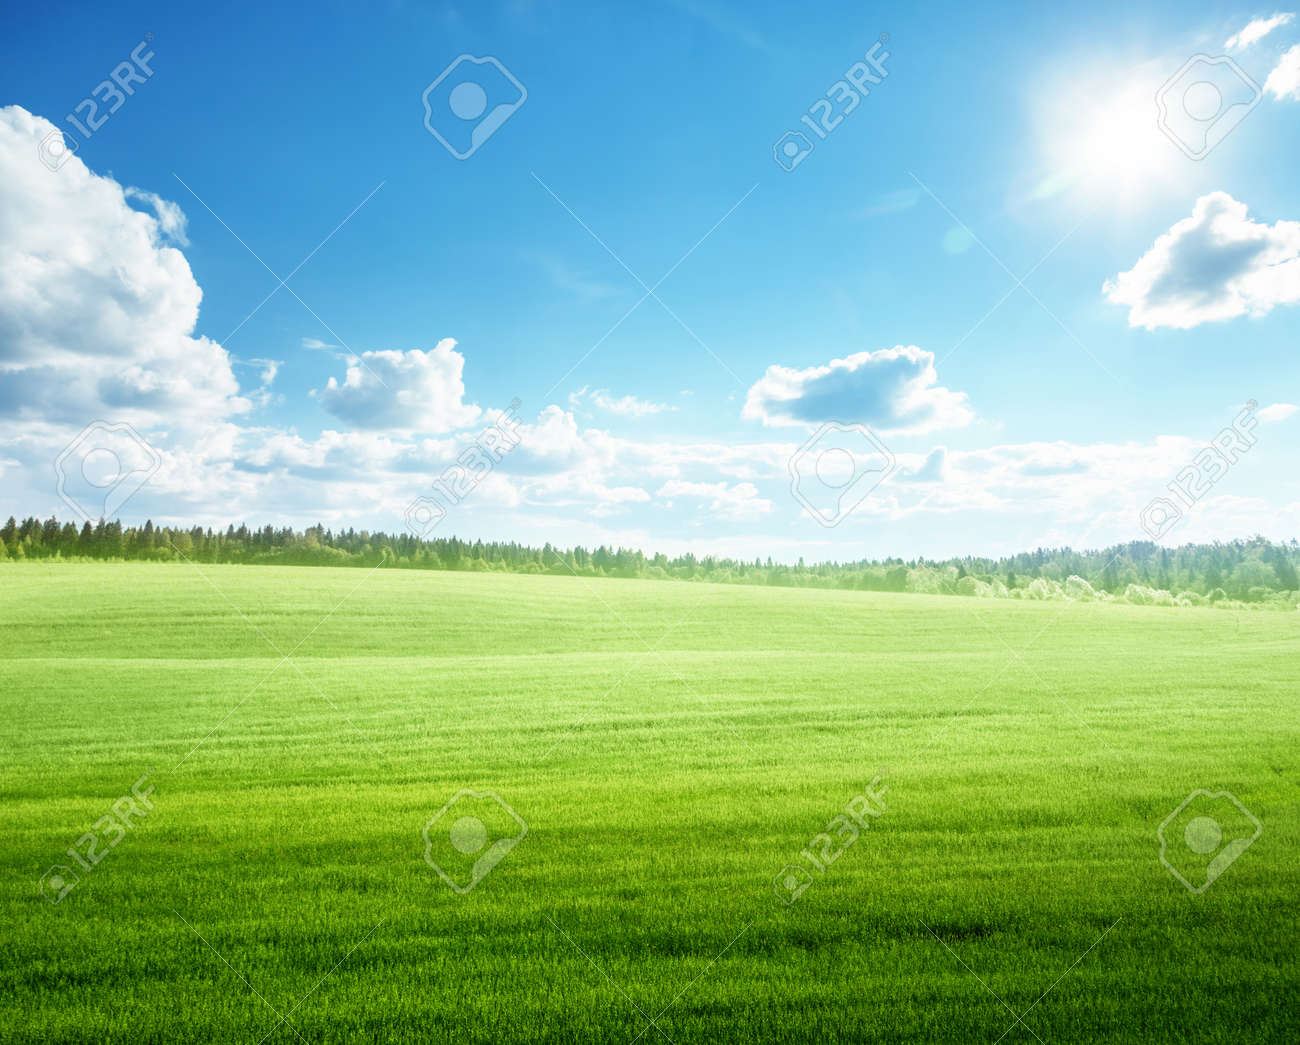 field of grass and perfect blue sky - 153902234